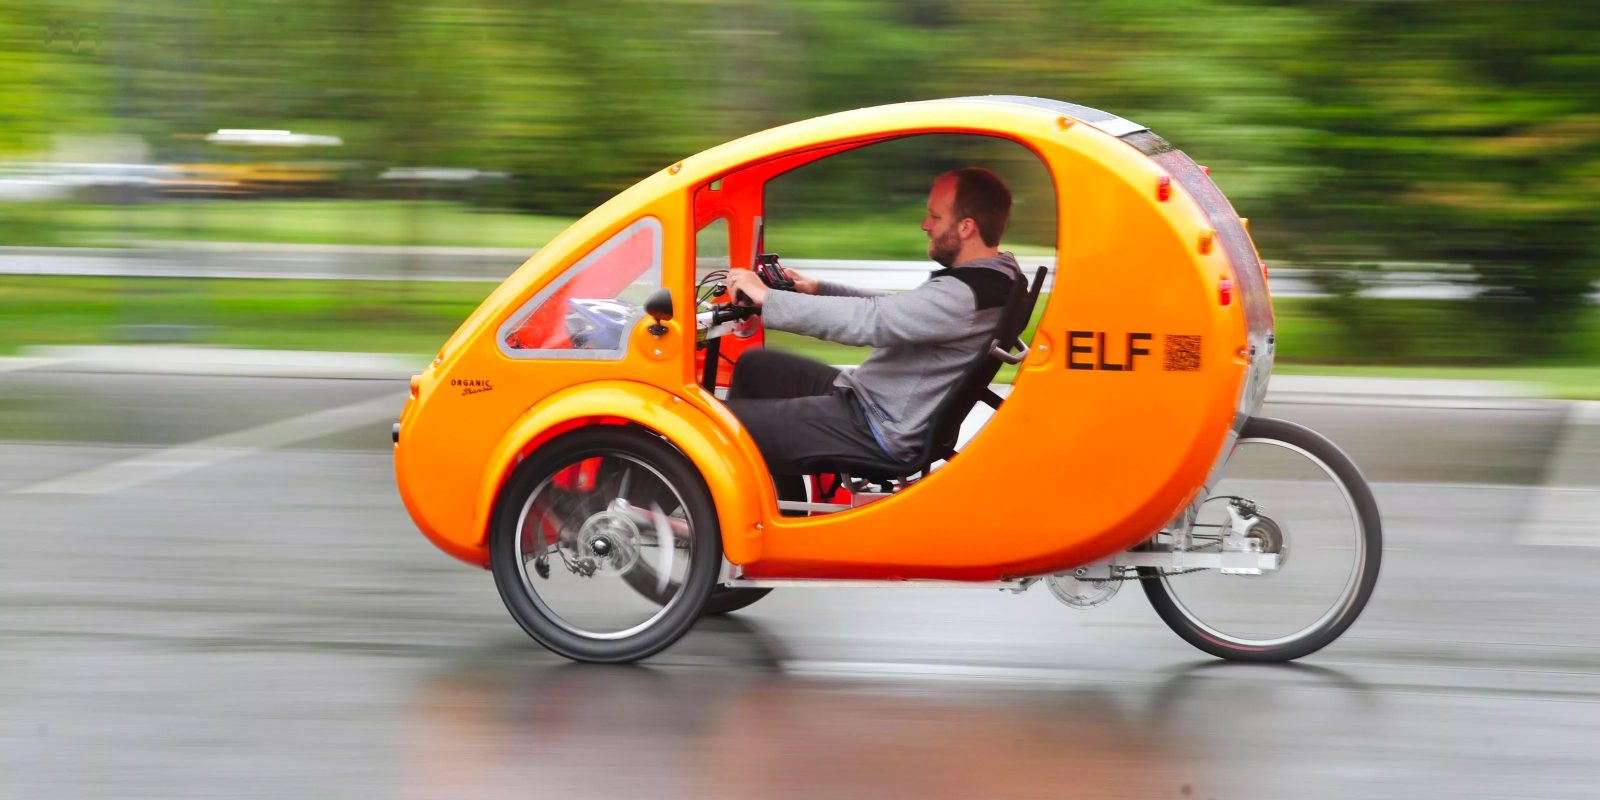 Solar Powered Electric Bike Cars Elf And Pebl Might Just